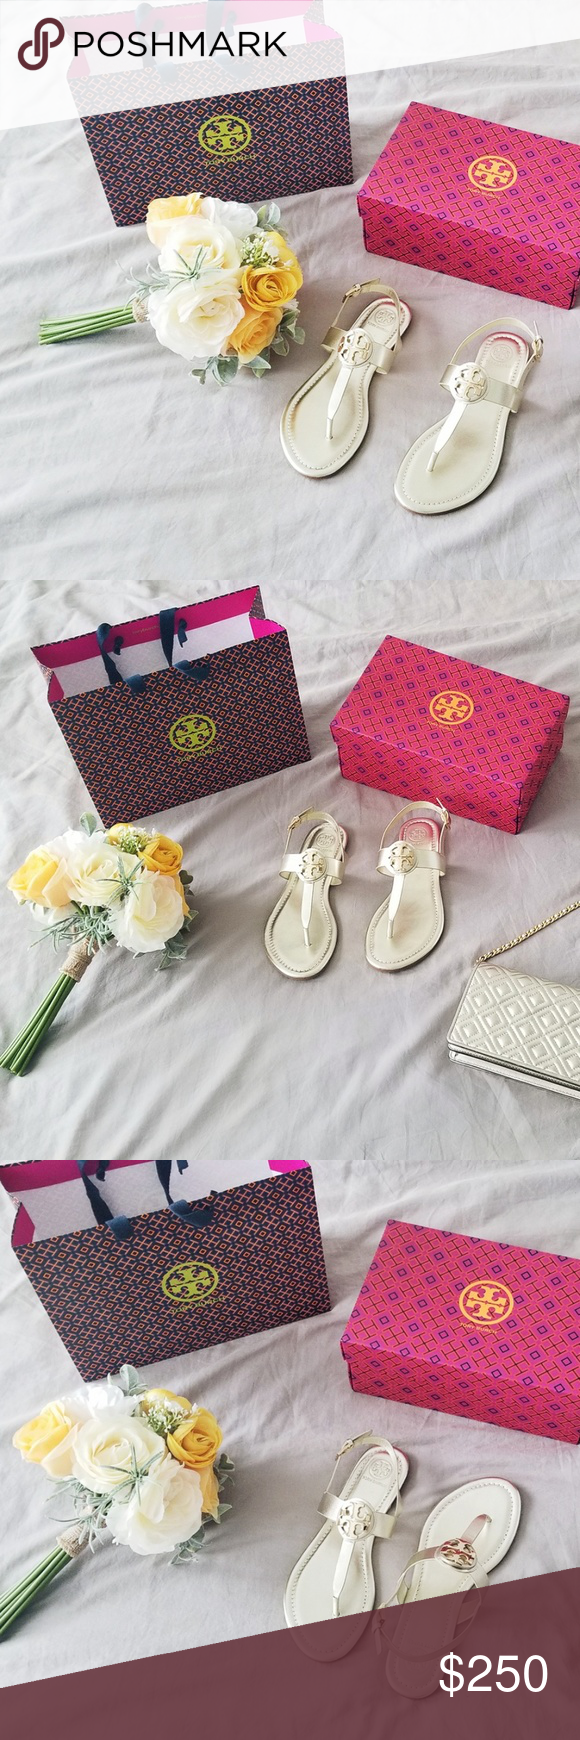 5c9e30af2 TORY BURCH Bryce Leather Thong Sandal Spark Gold Bryce Flat Thong Sandal in Spark  Gold Women s